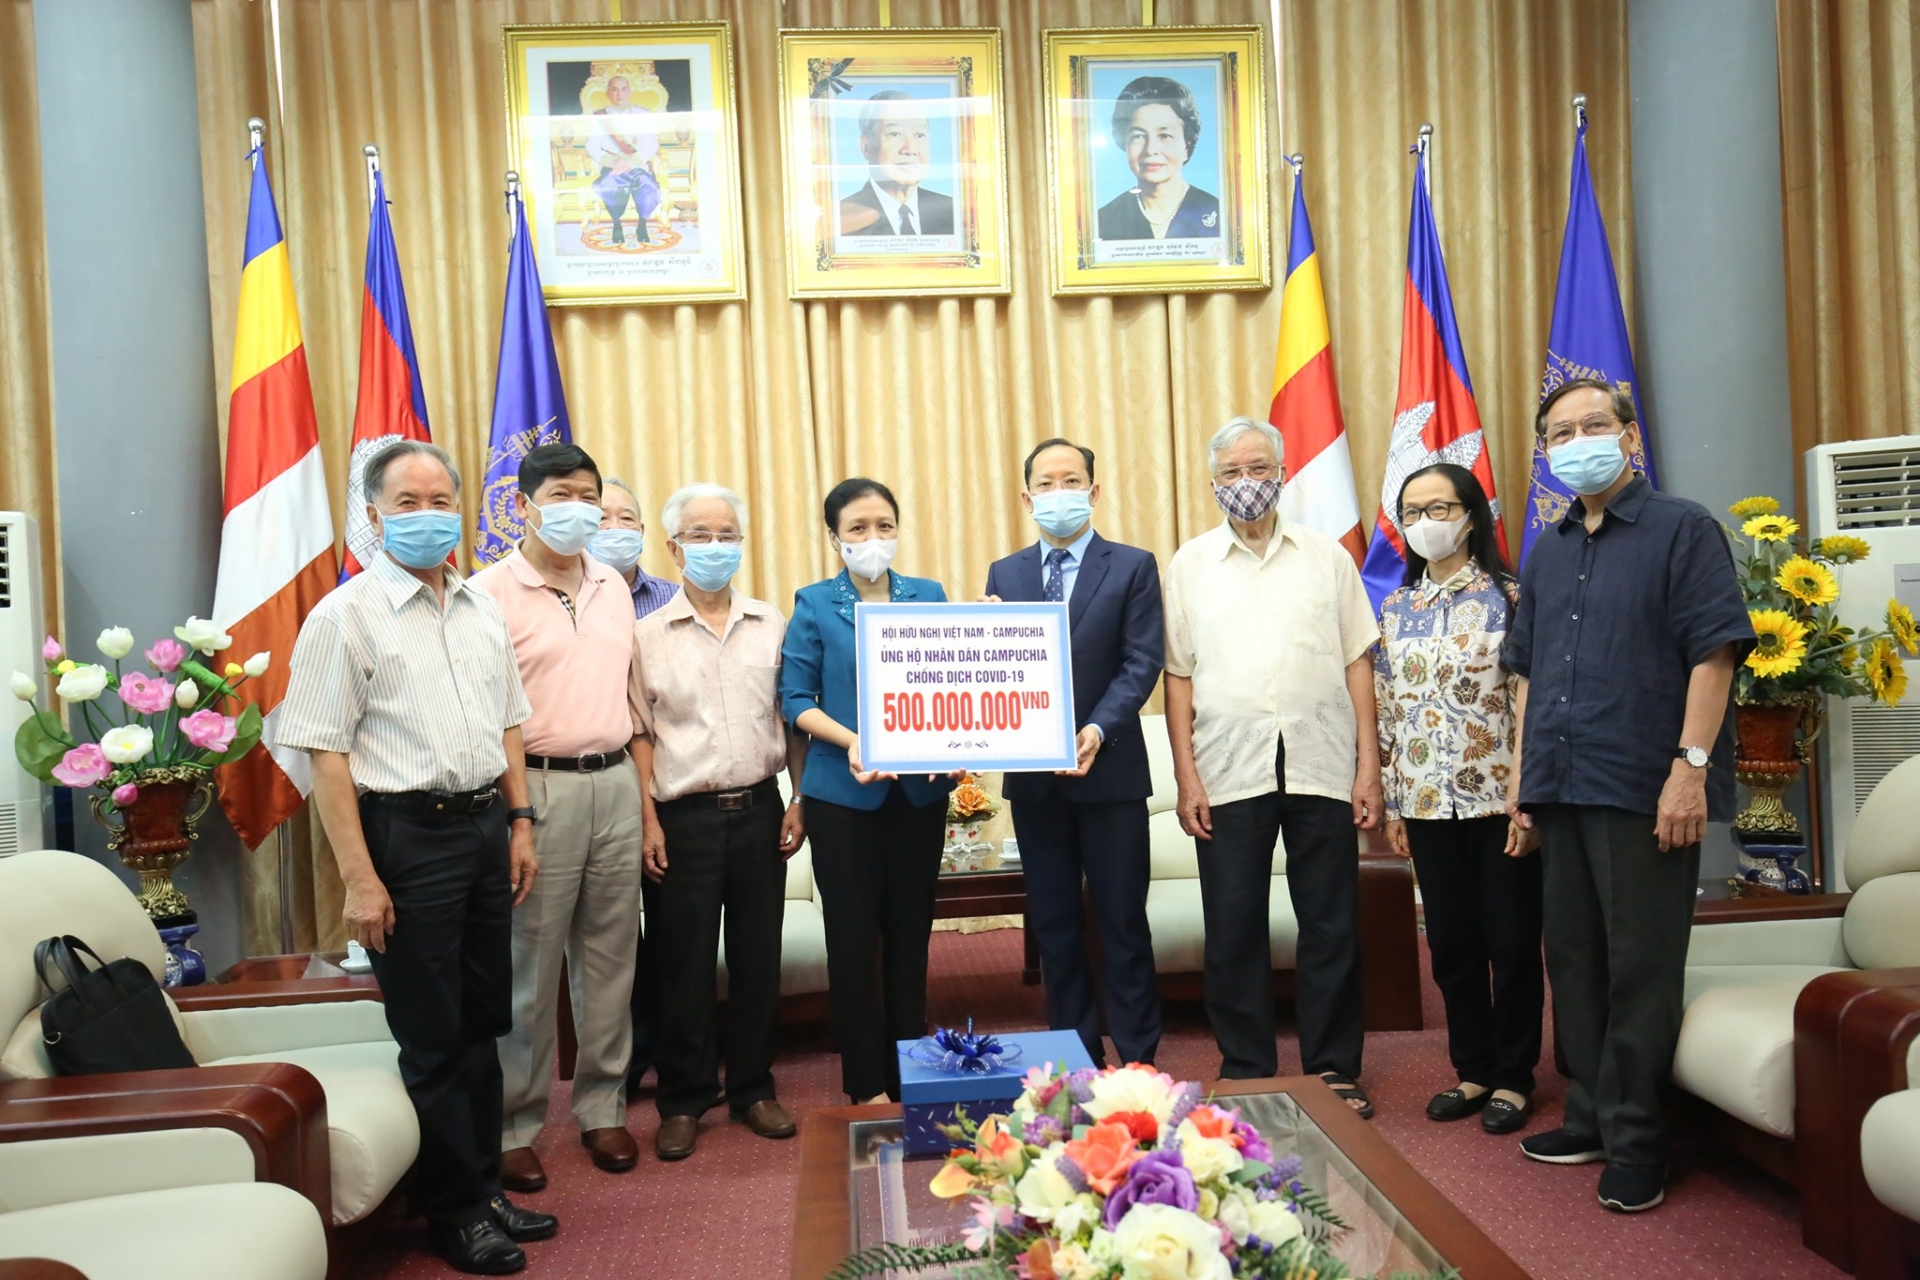 VUFO, Friendship Association offers $200,000 in aid to Cambodia's Covid-19 fight